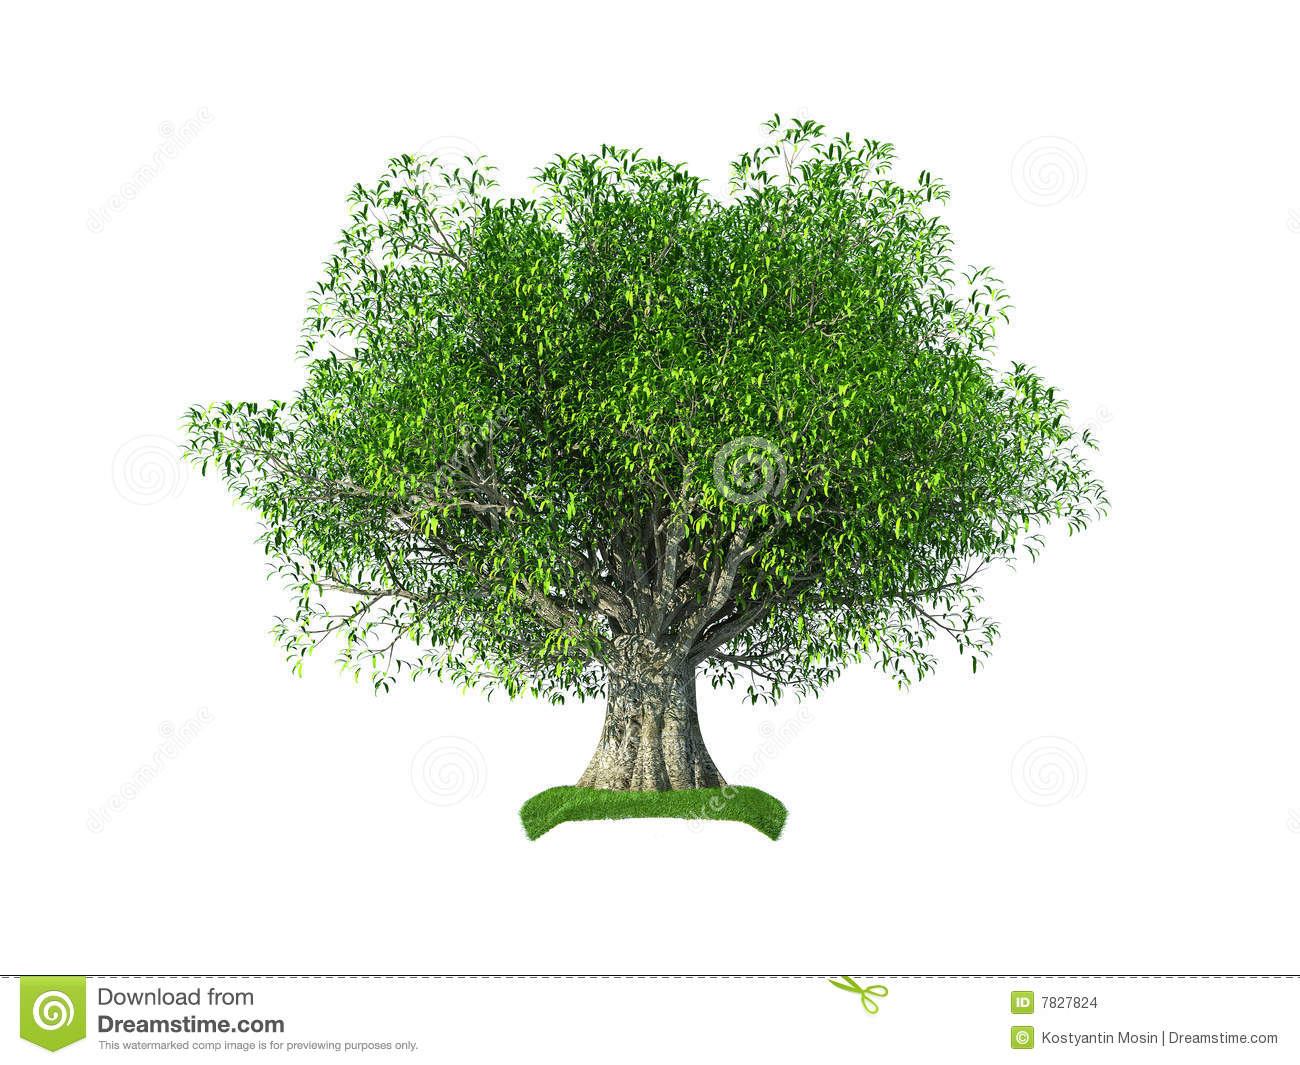 Render of the 3d olive tree isolated on the white background.